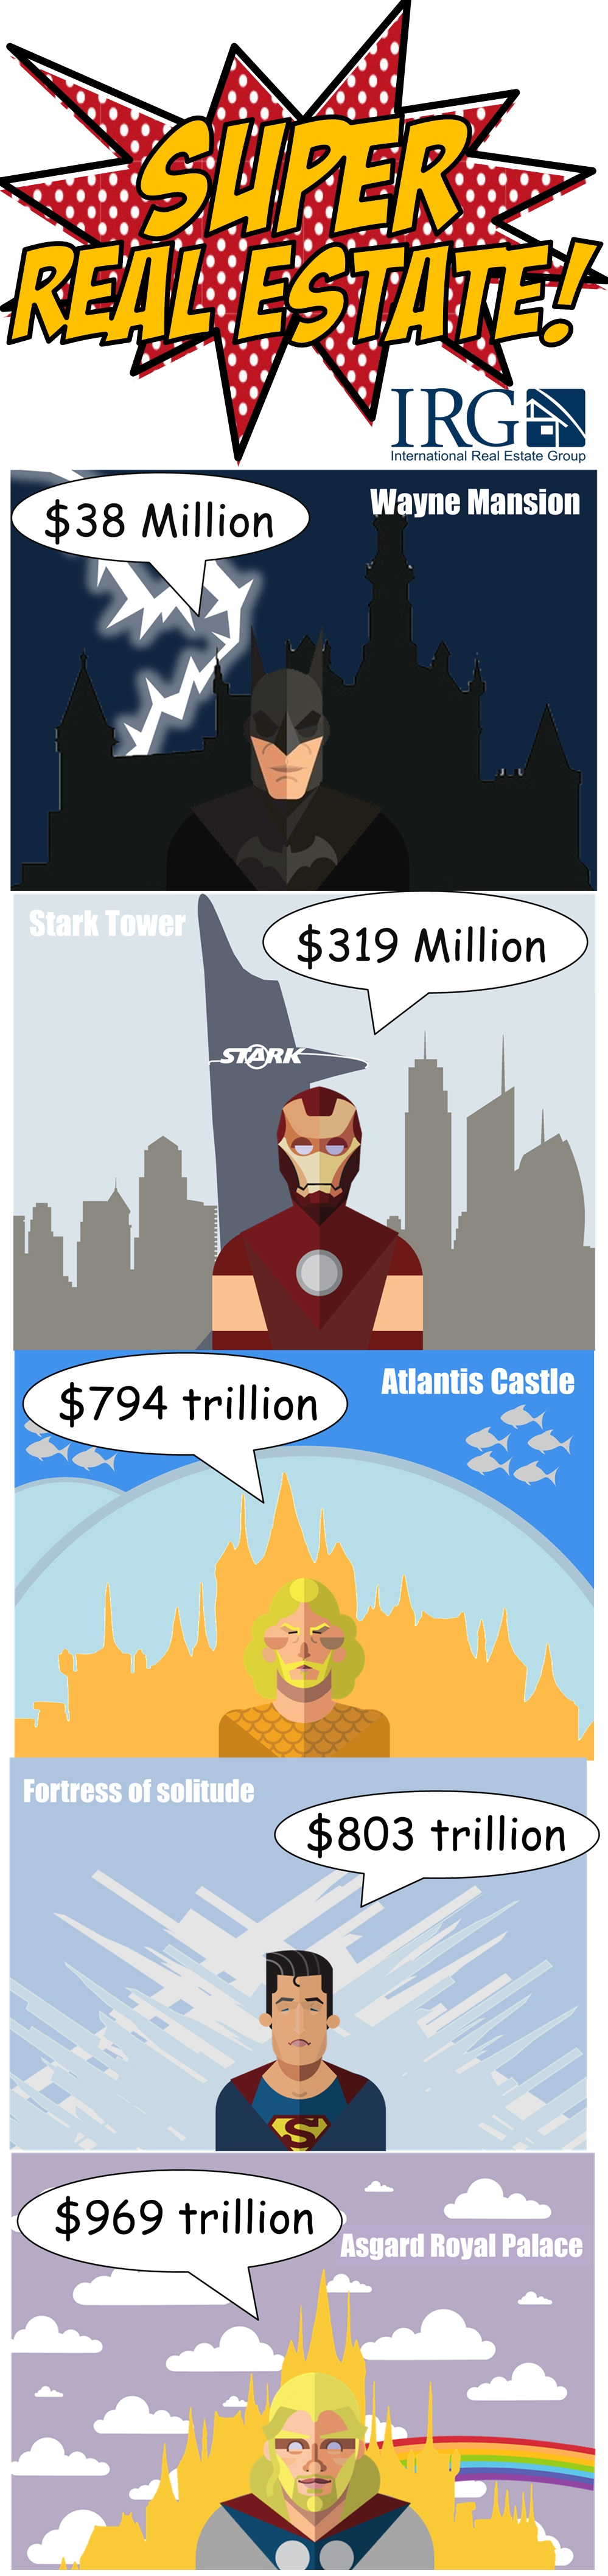 Super #realestate, here are some of the estimated prices of #Superhero's Properties on #nationalsuperheroday